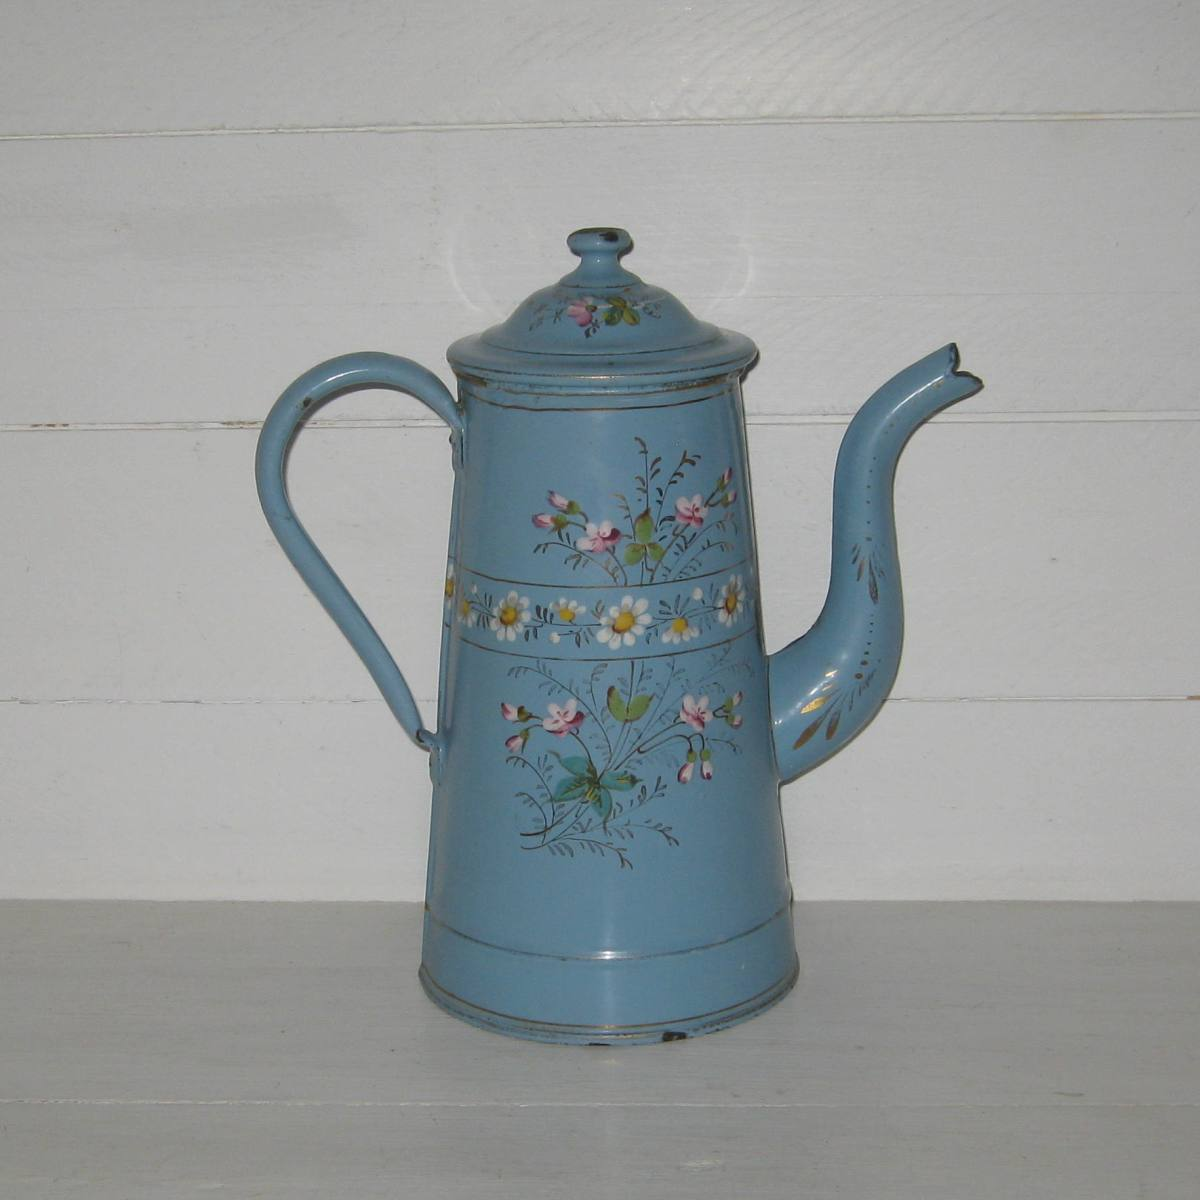 Cafetiere tole emaillee bleue a fleurs champetres 1